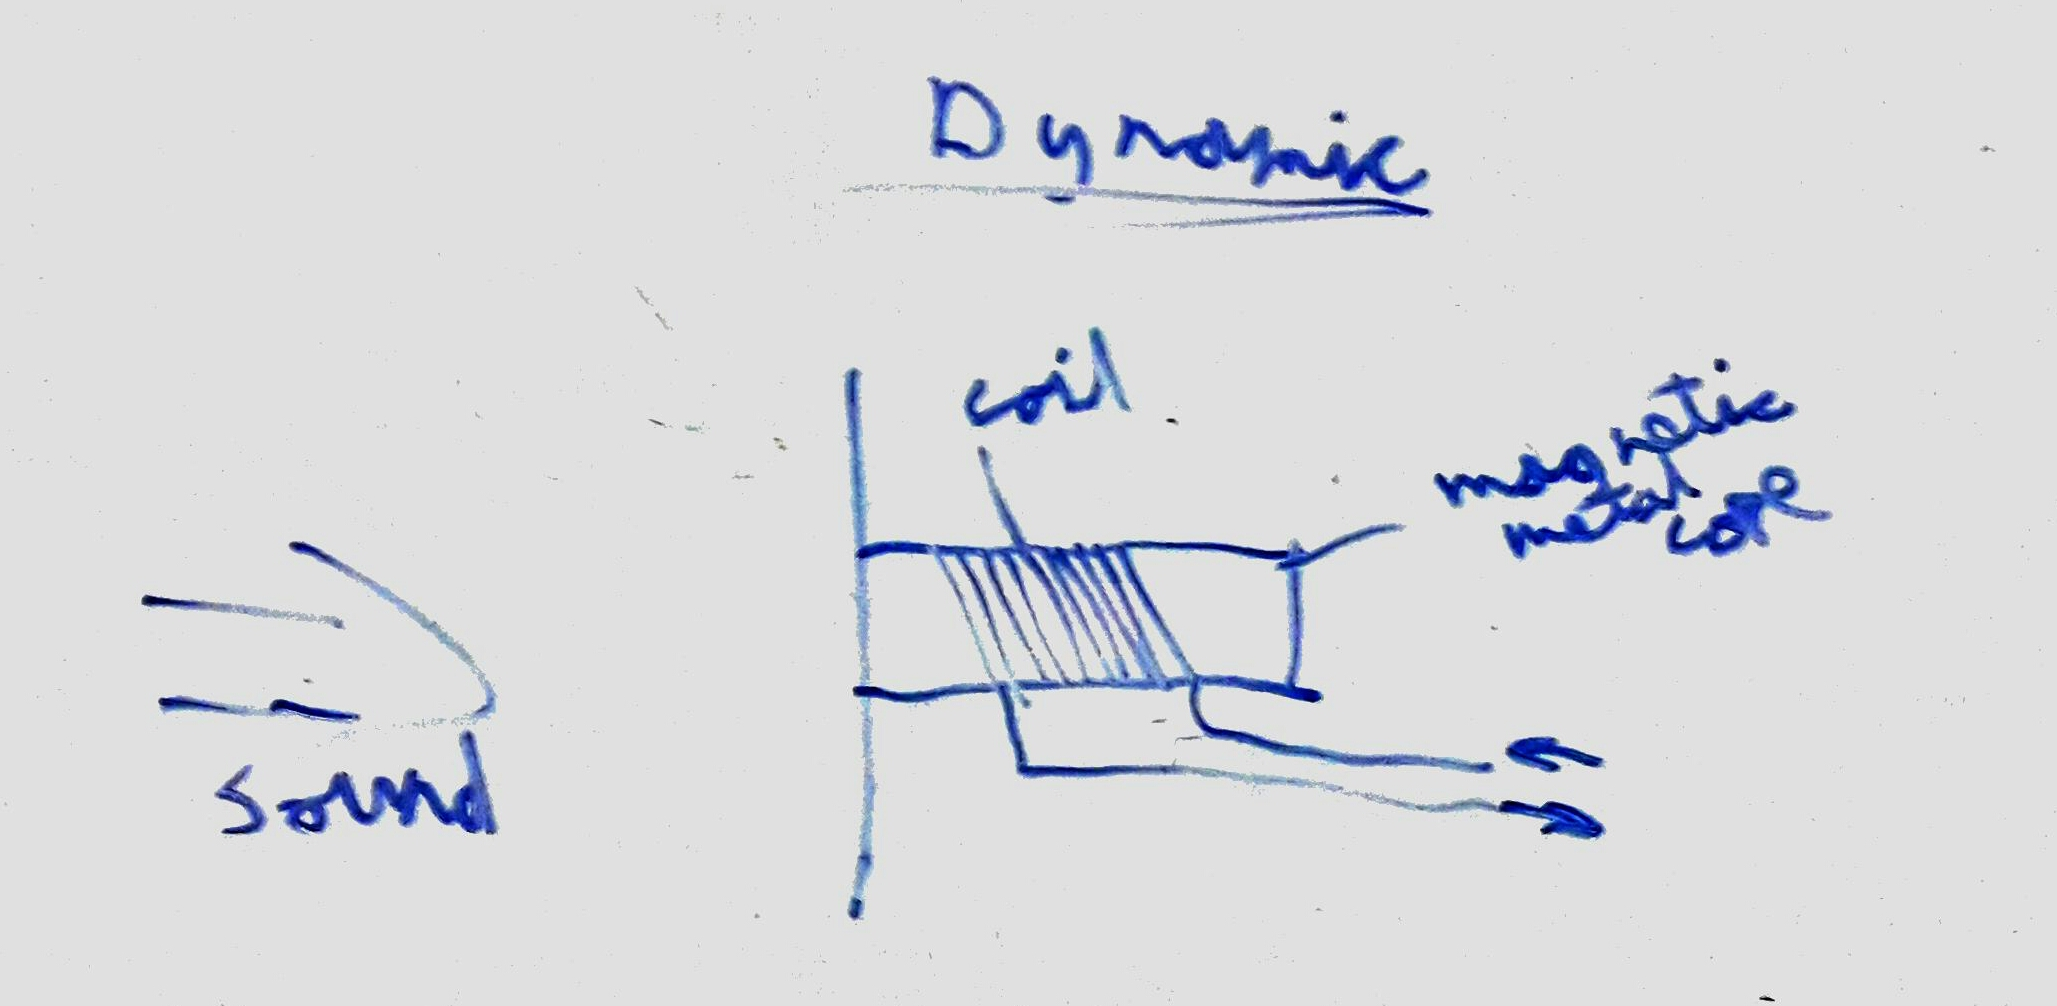 A diagram of how a dynamic microphone works on a whiteboard. Full explanation below.